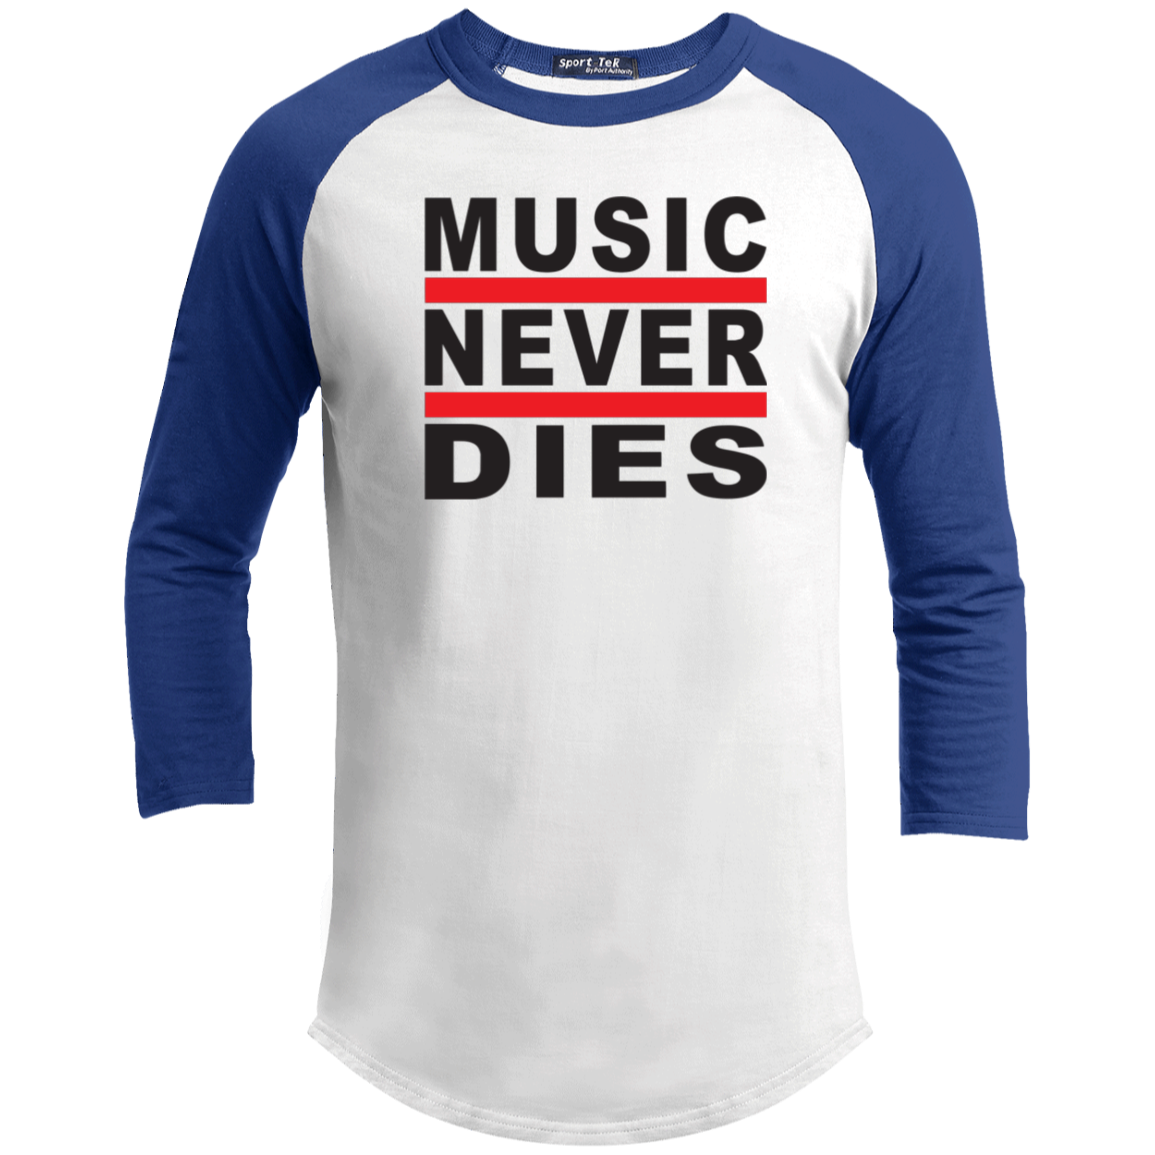 Music Never Dies - T200 Sport-Tek Sporty T-Shirt